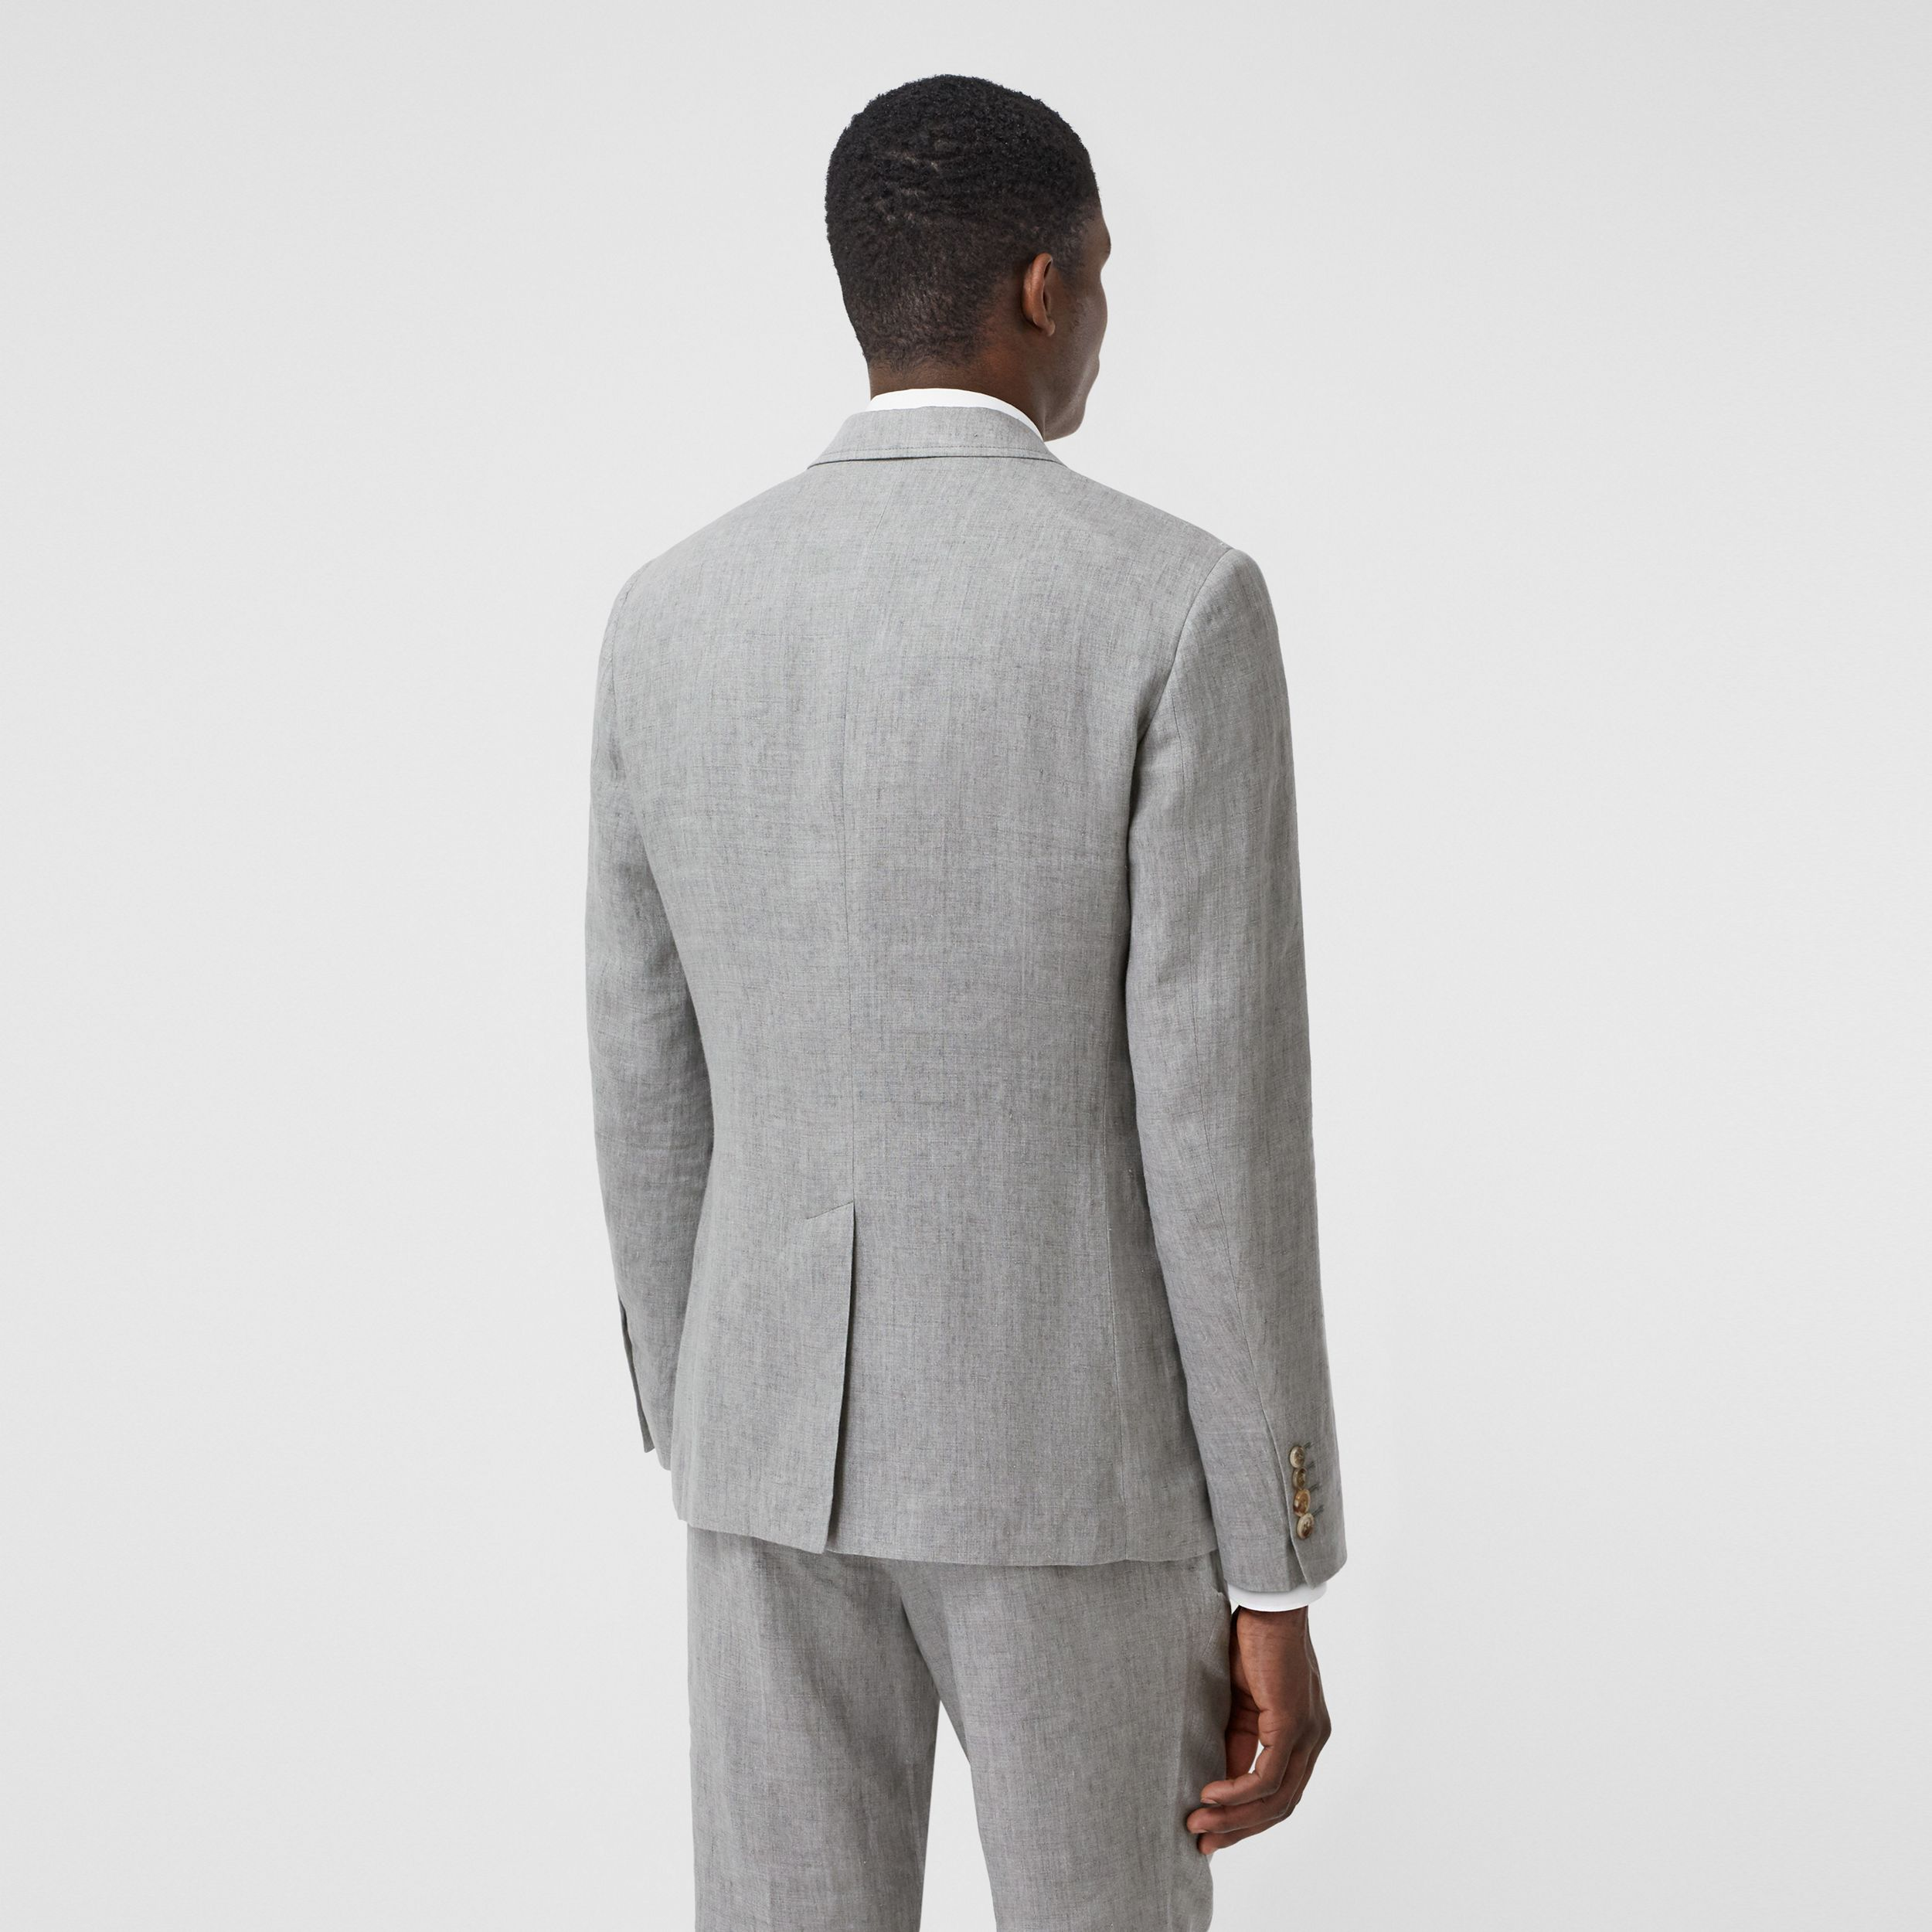 Slim Fit Linen Tailored Jacket in Heather Melange - Men | Burberry - 3